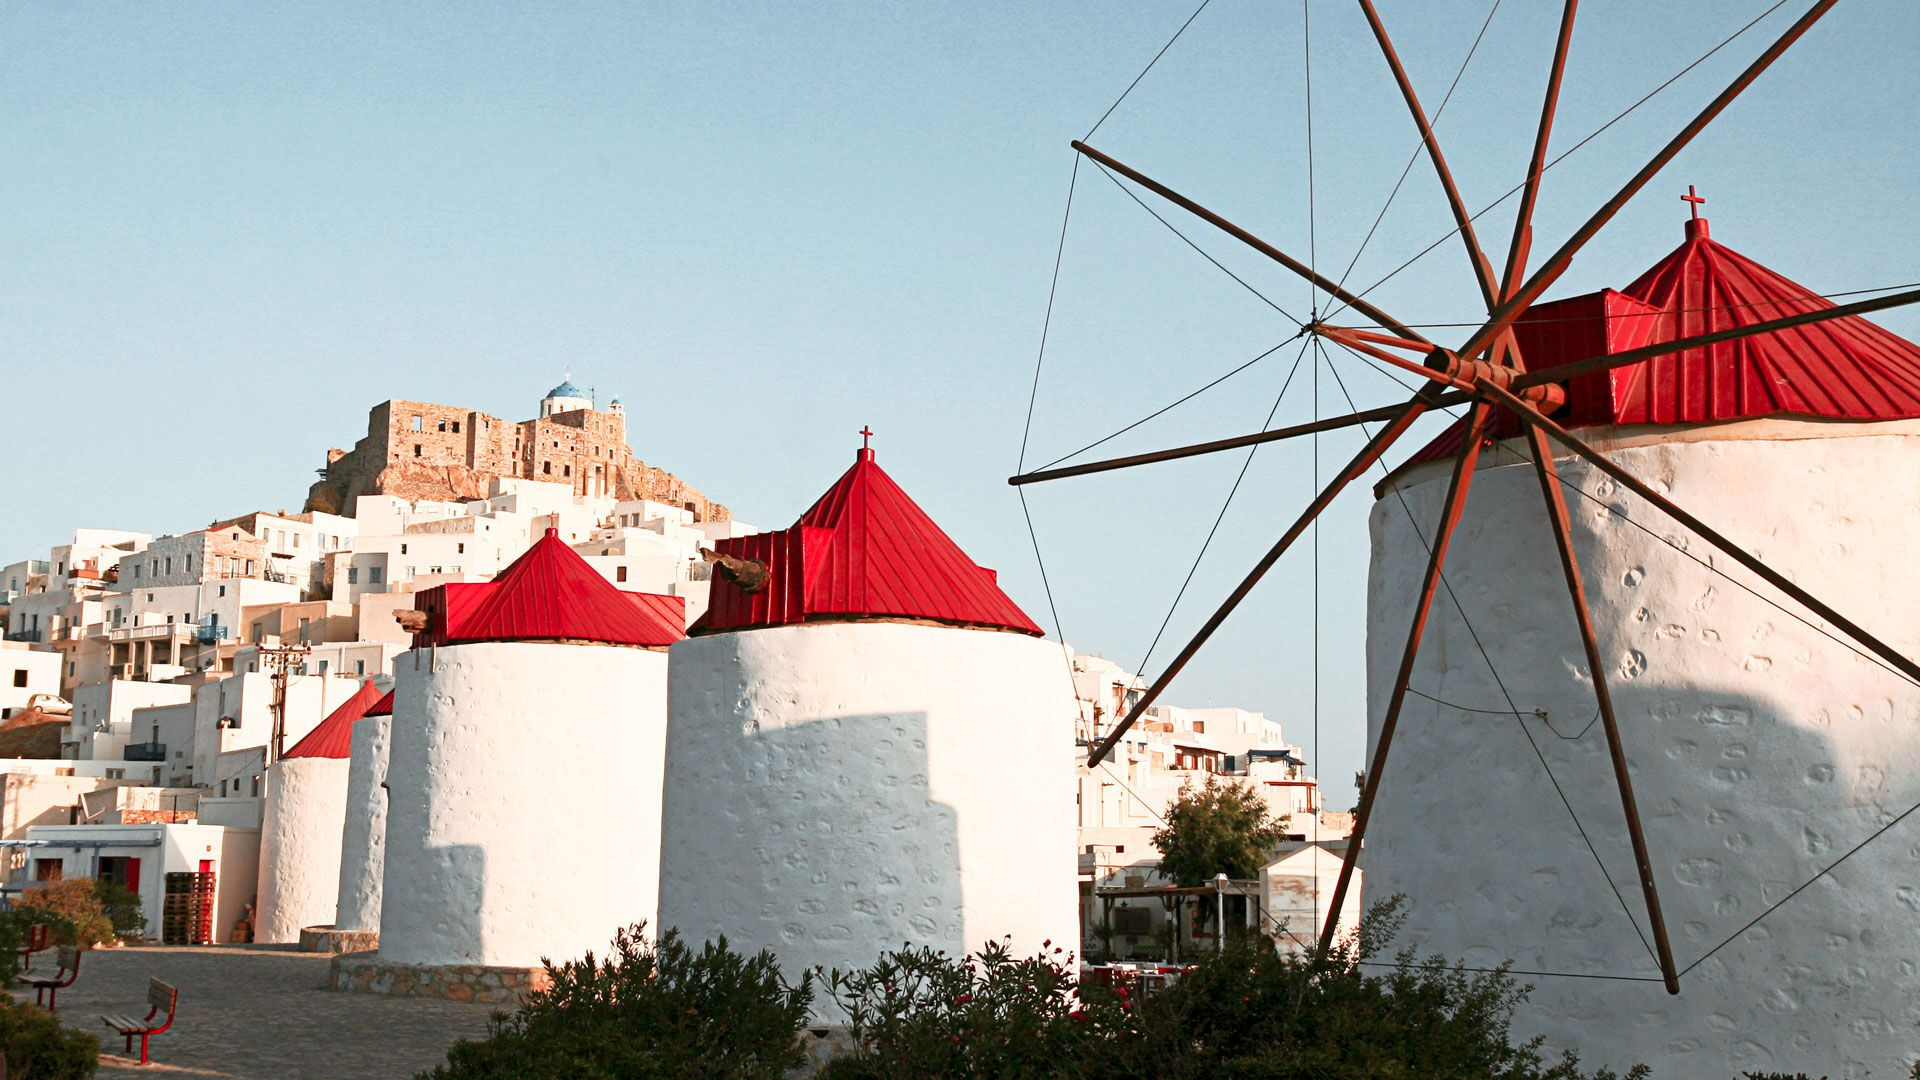 Reaching the central square of Hora, you are going to admire the town's eight windmills